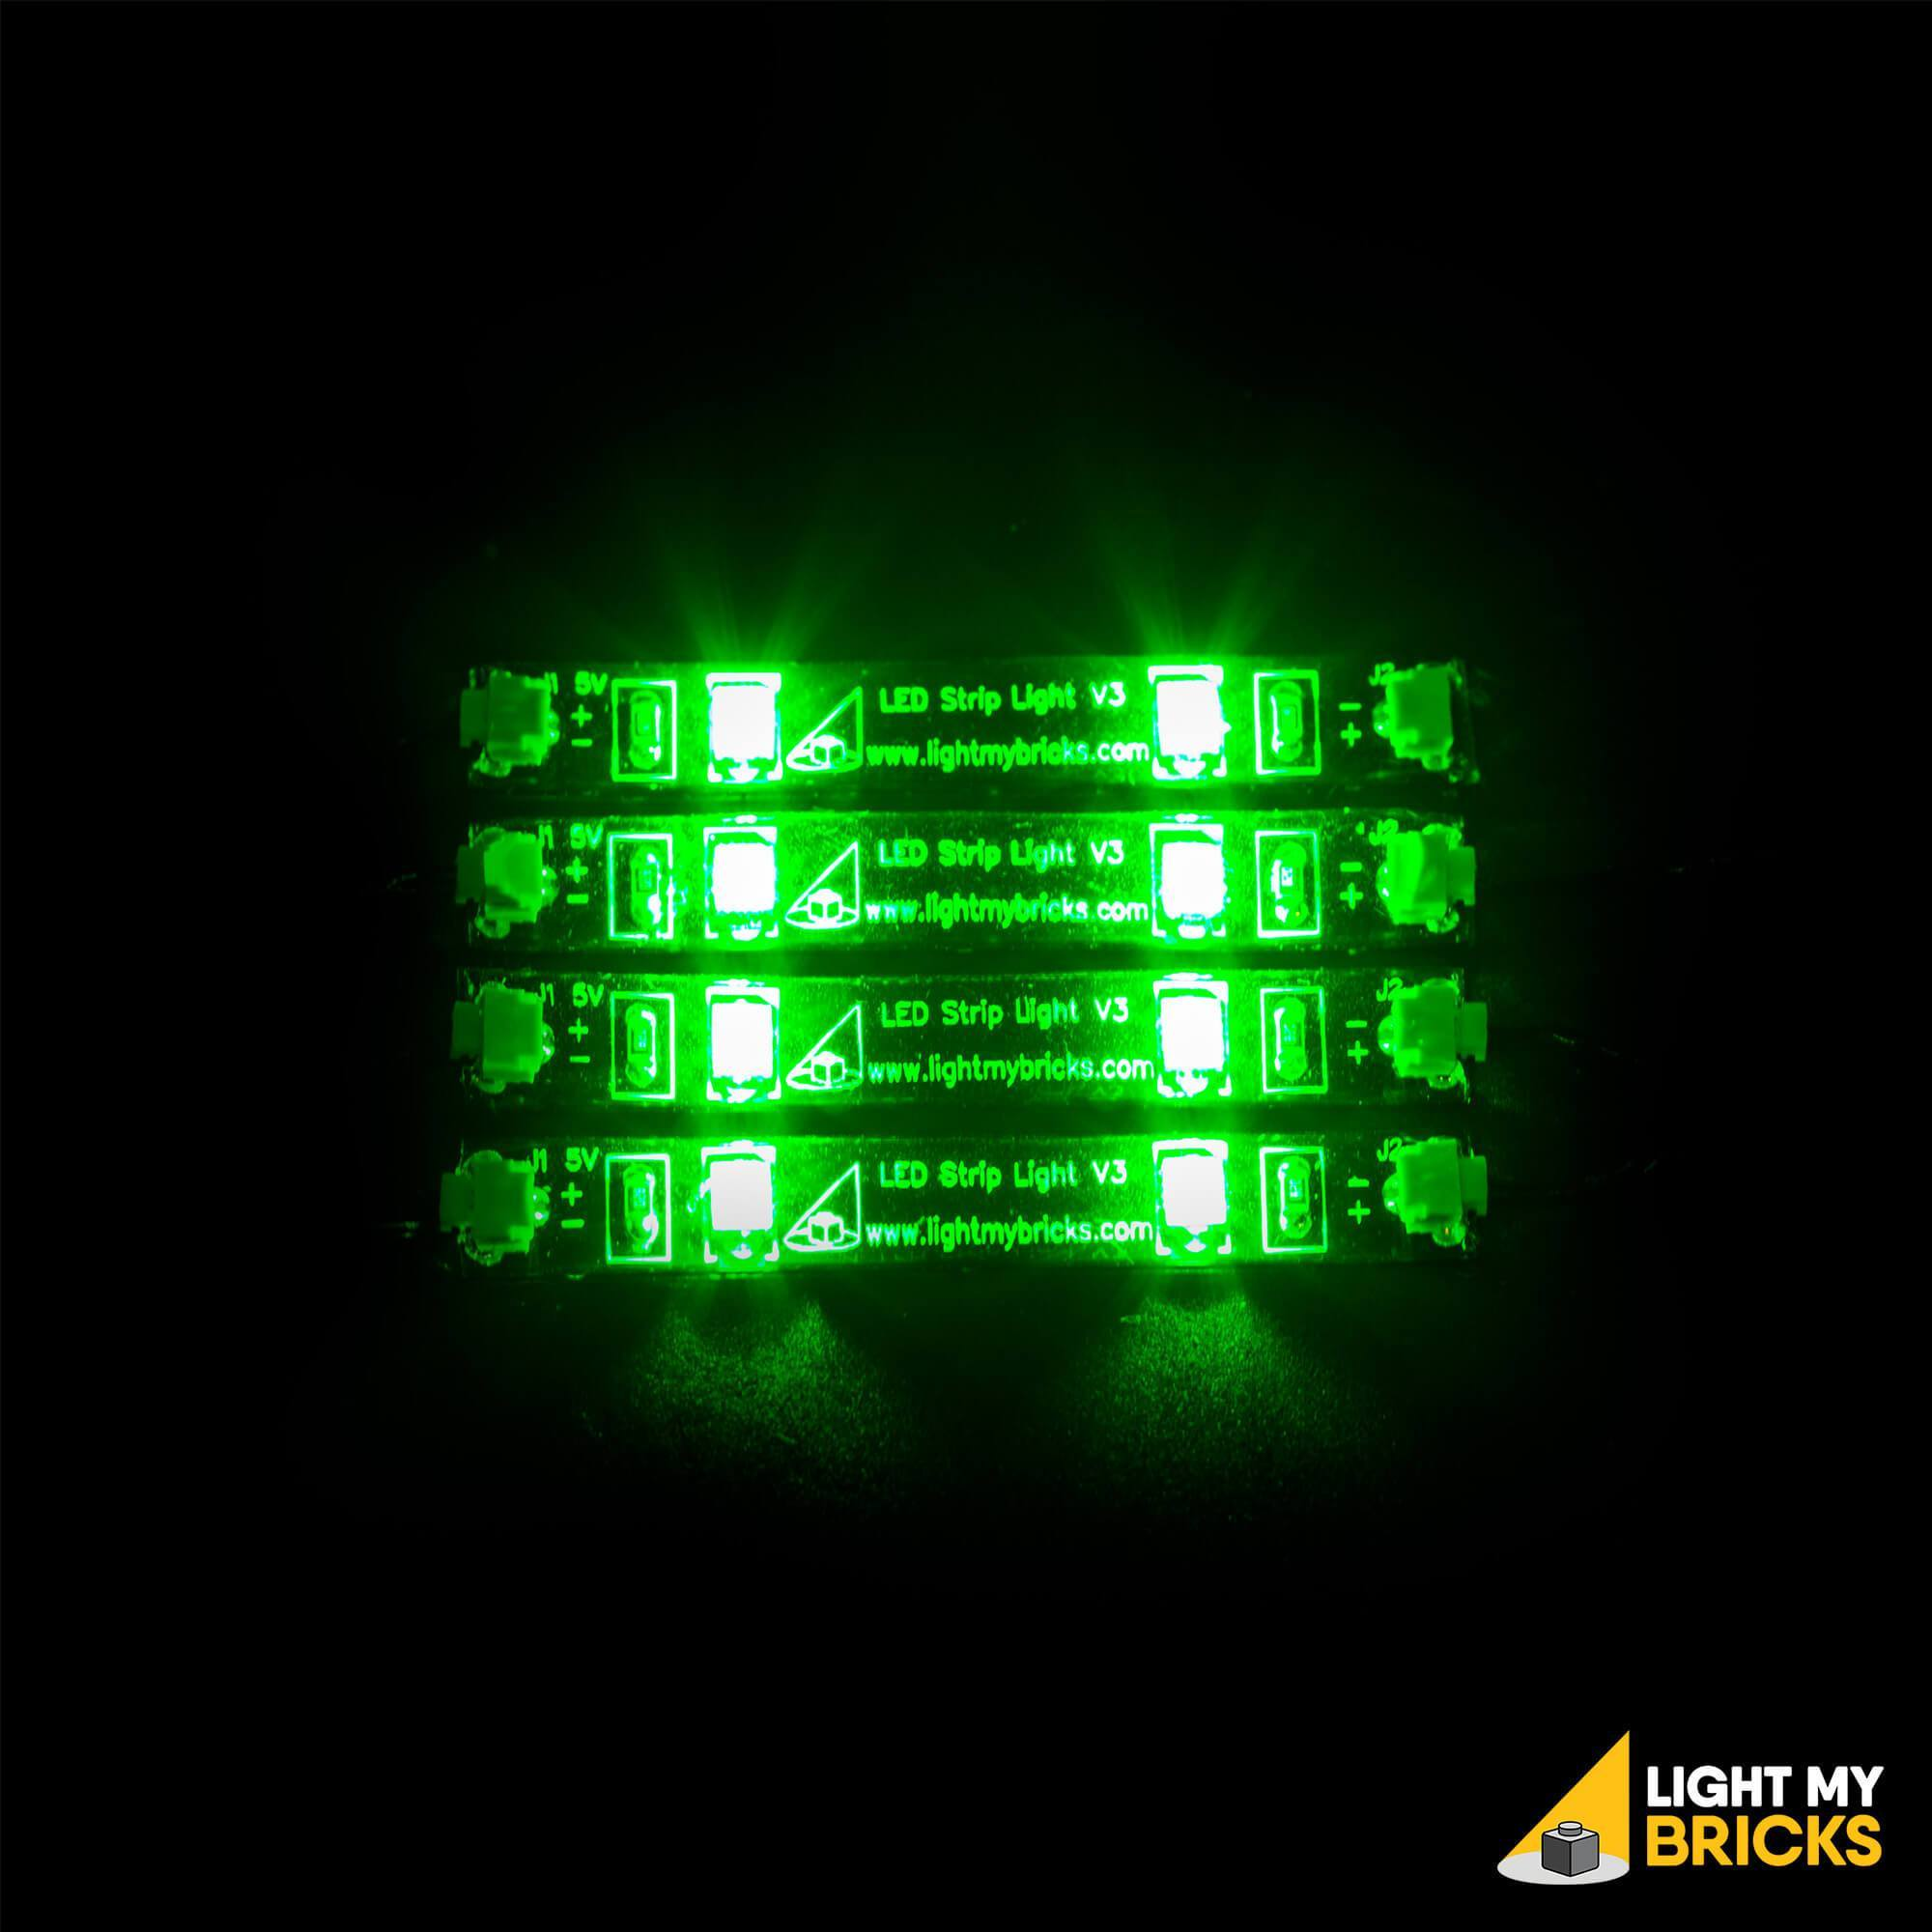 Light My Bricks LEGO Lighting Component - LED Strip Light Green Activated